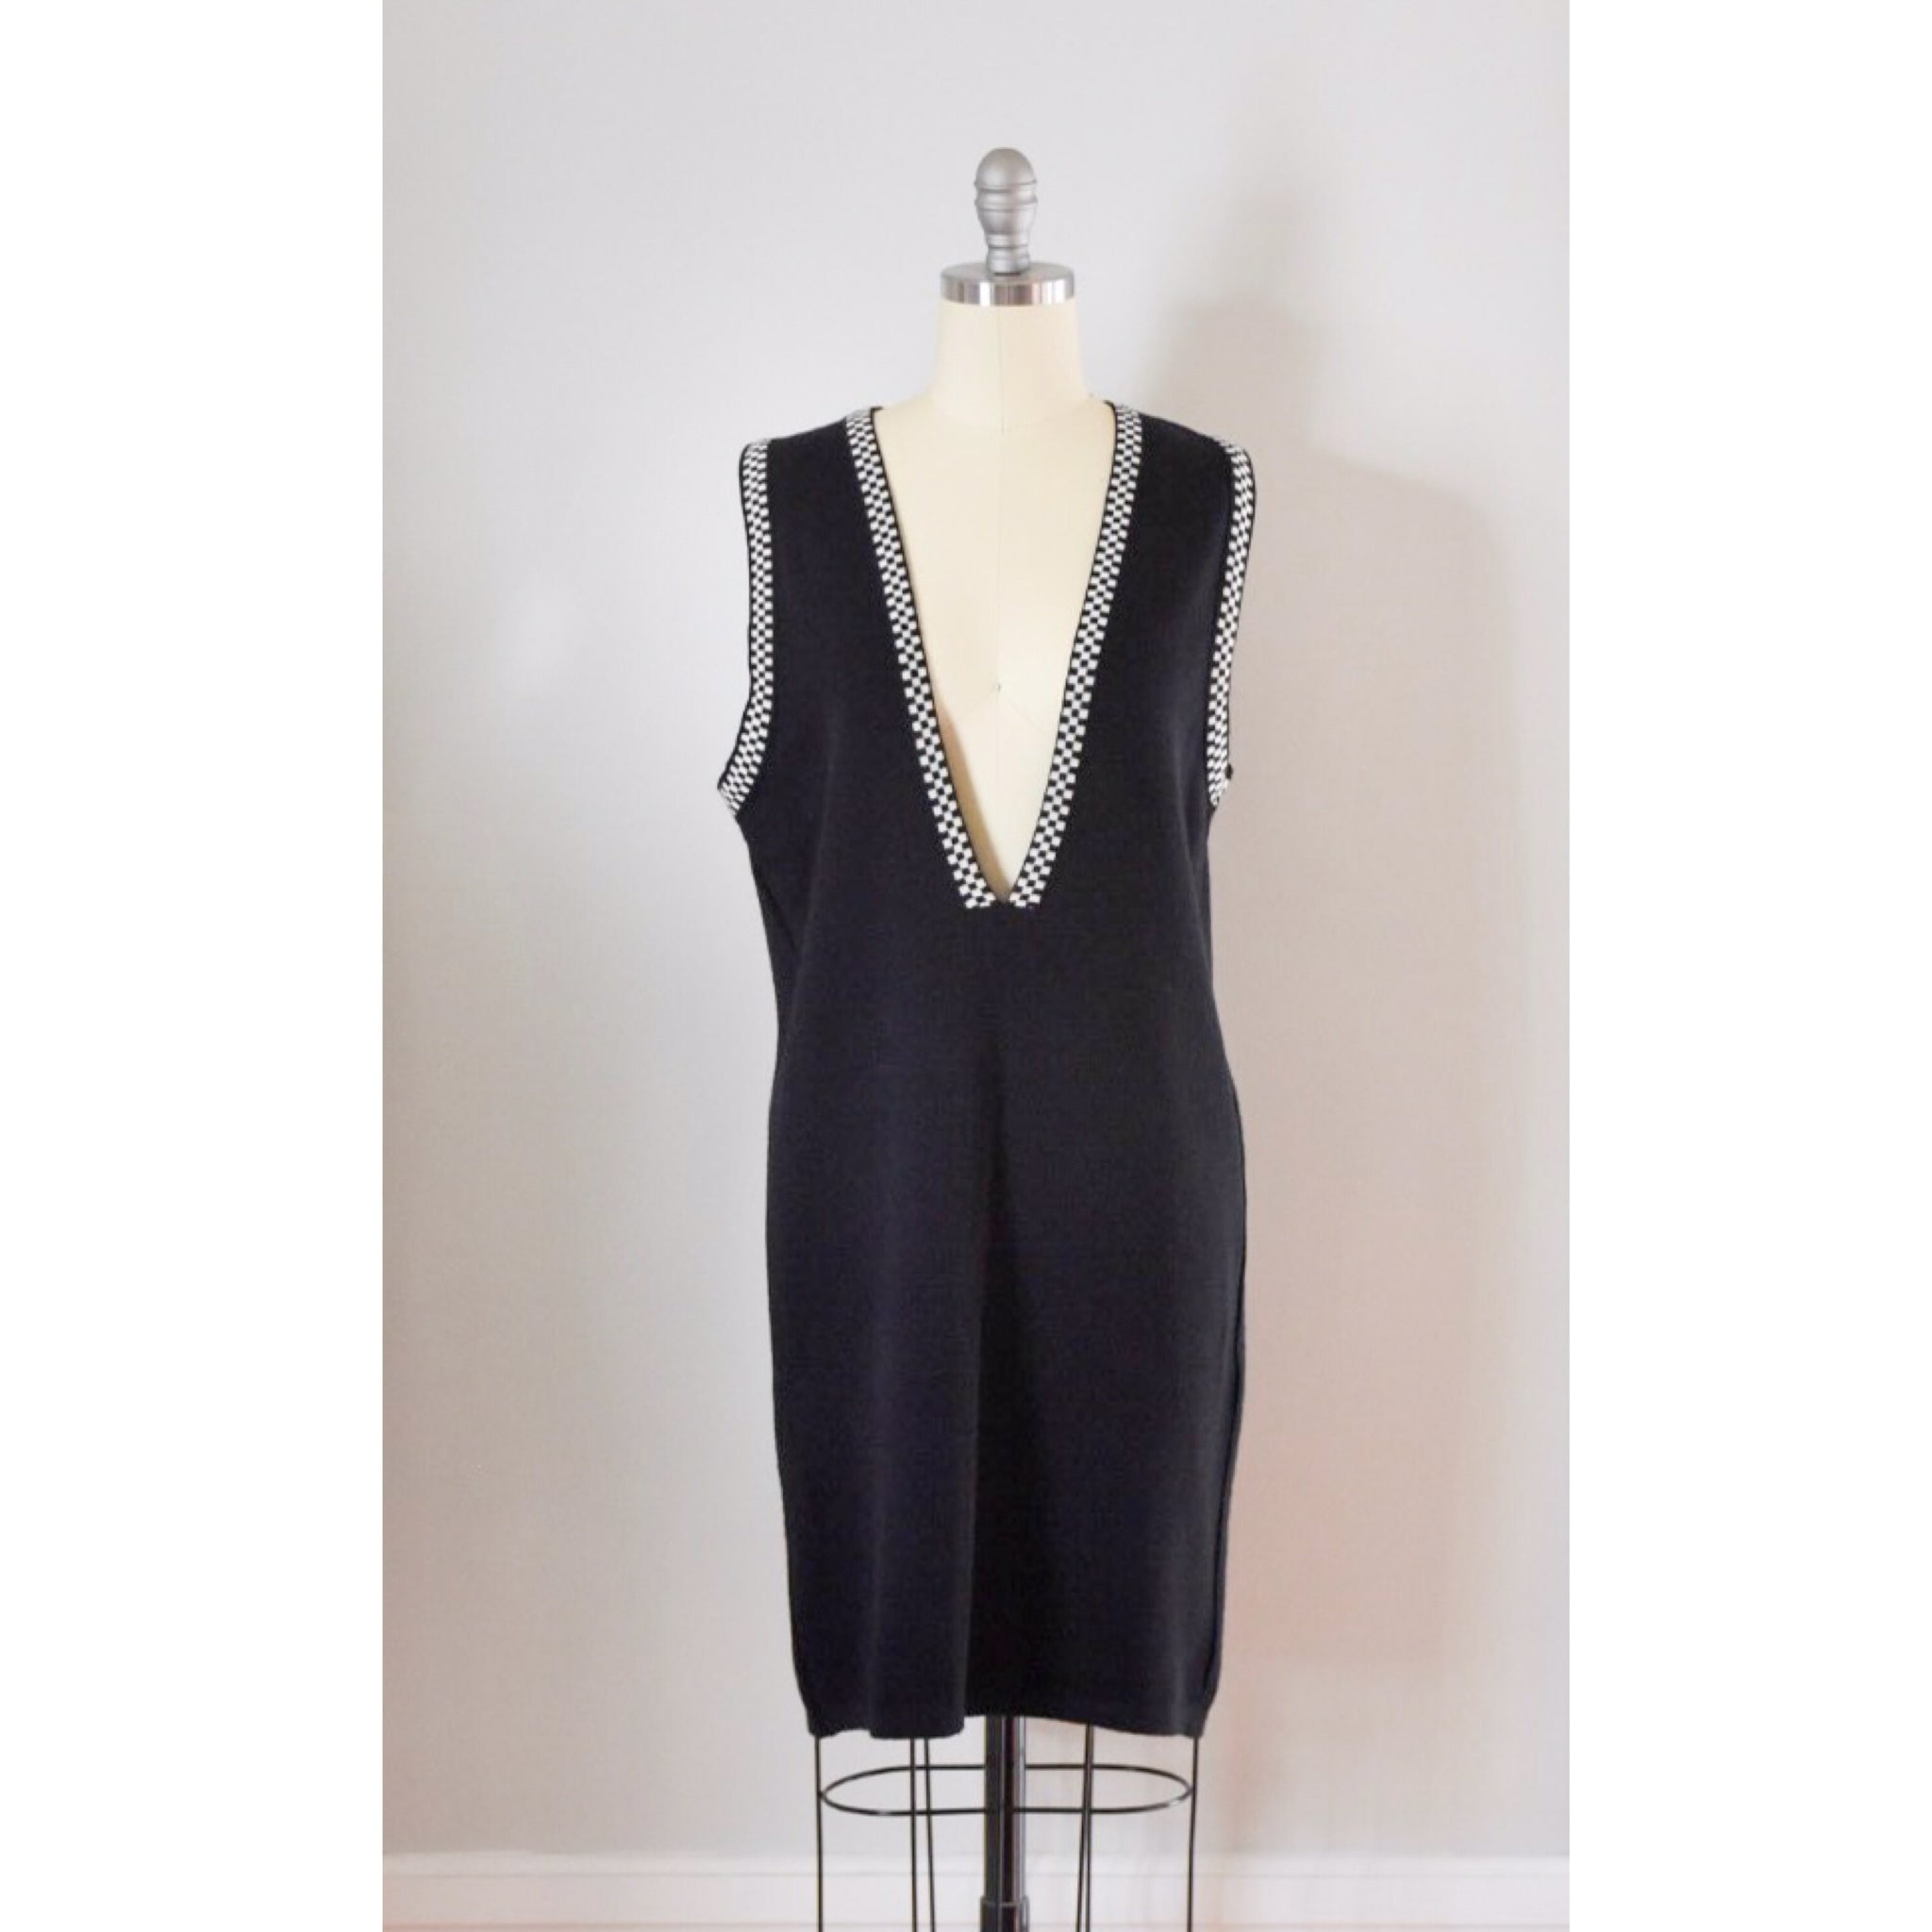 90s Vintage Wool Vest Dress from Duncan Loves Tess Vintage and Retro, www.duncanlovestess.com